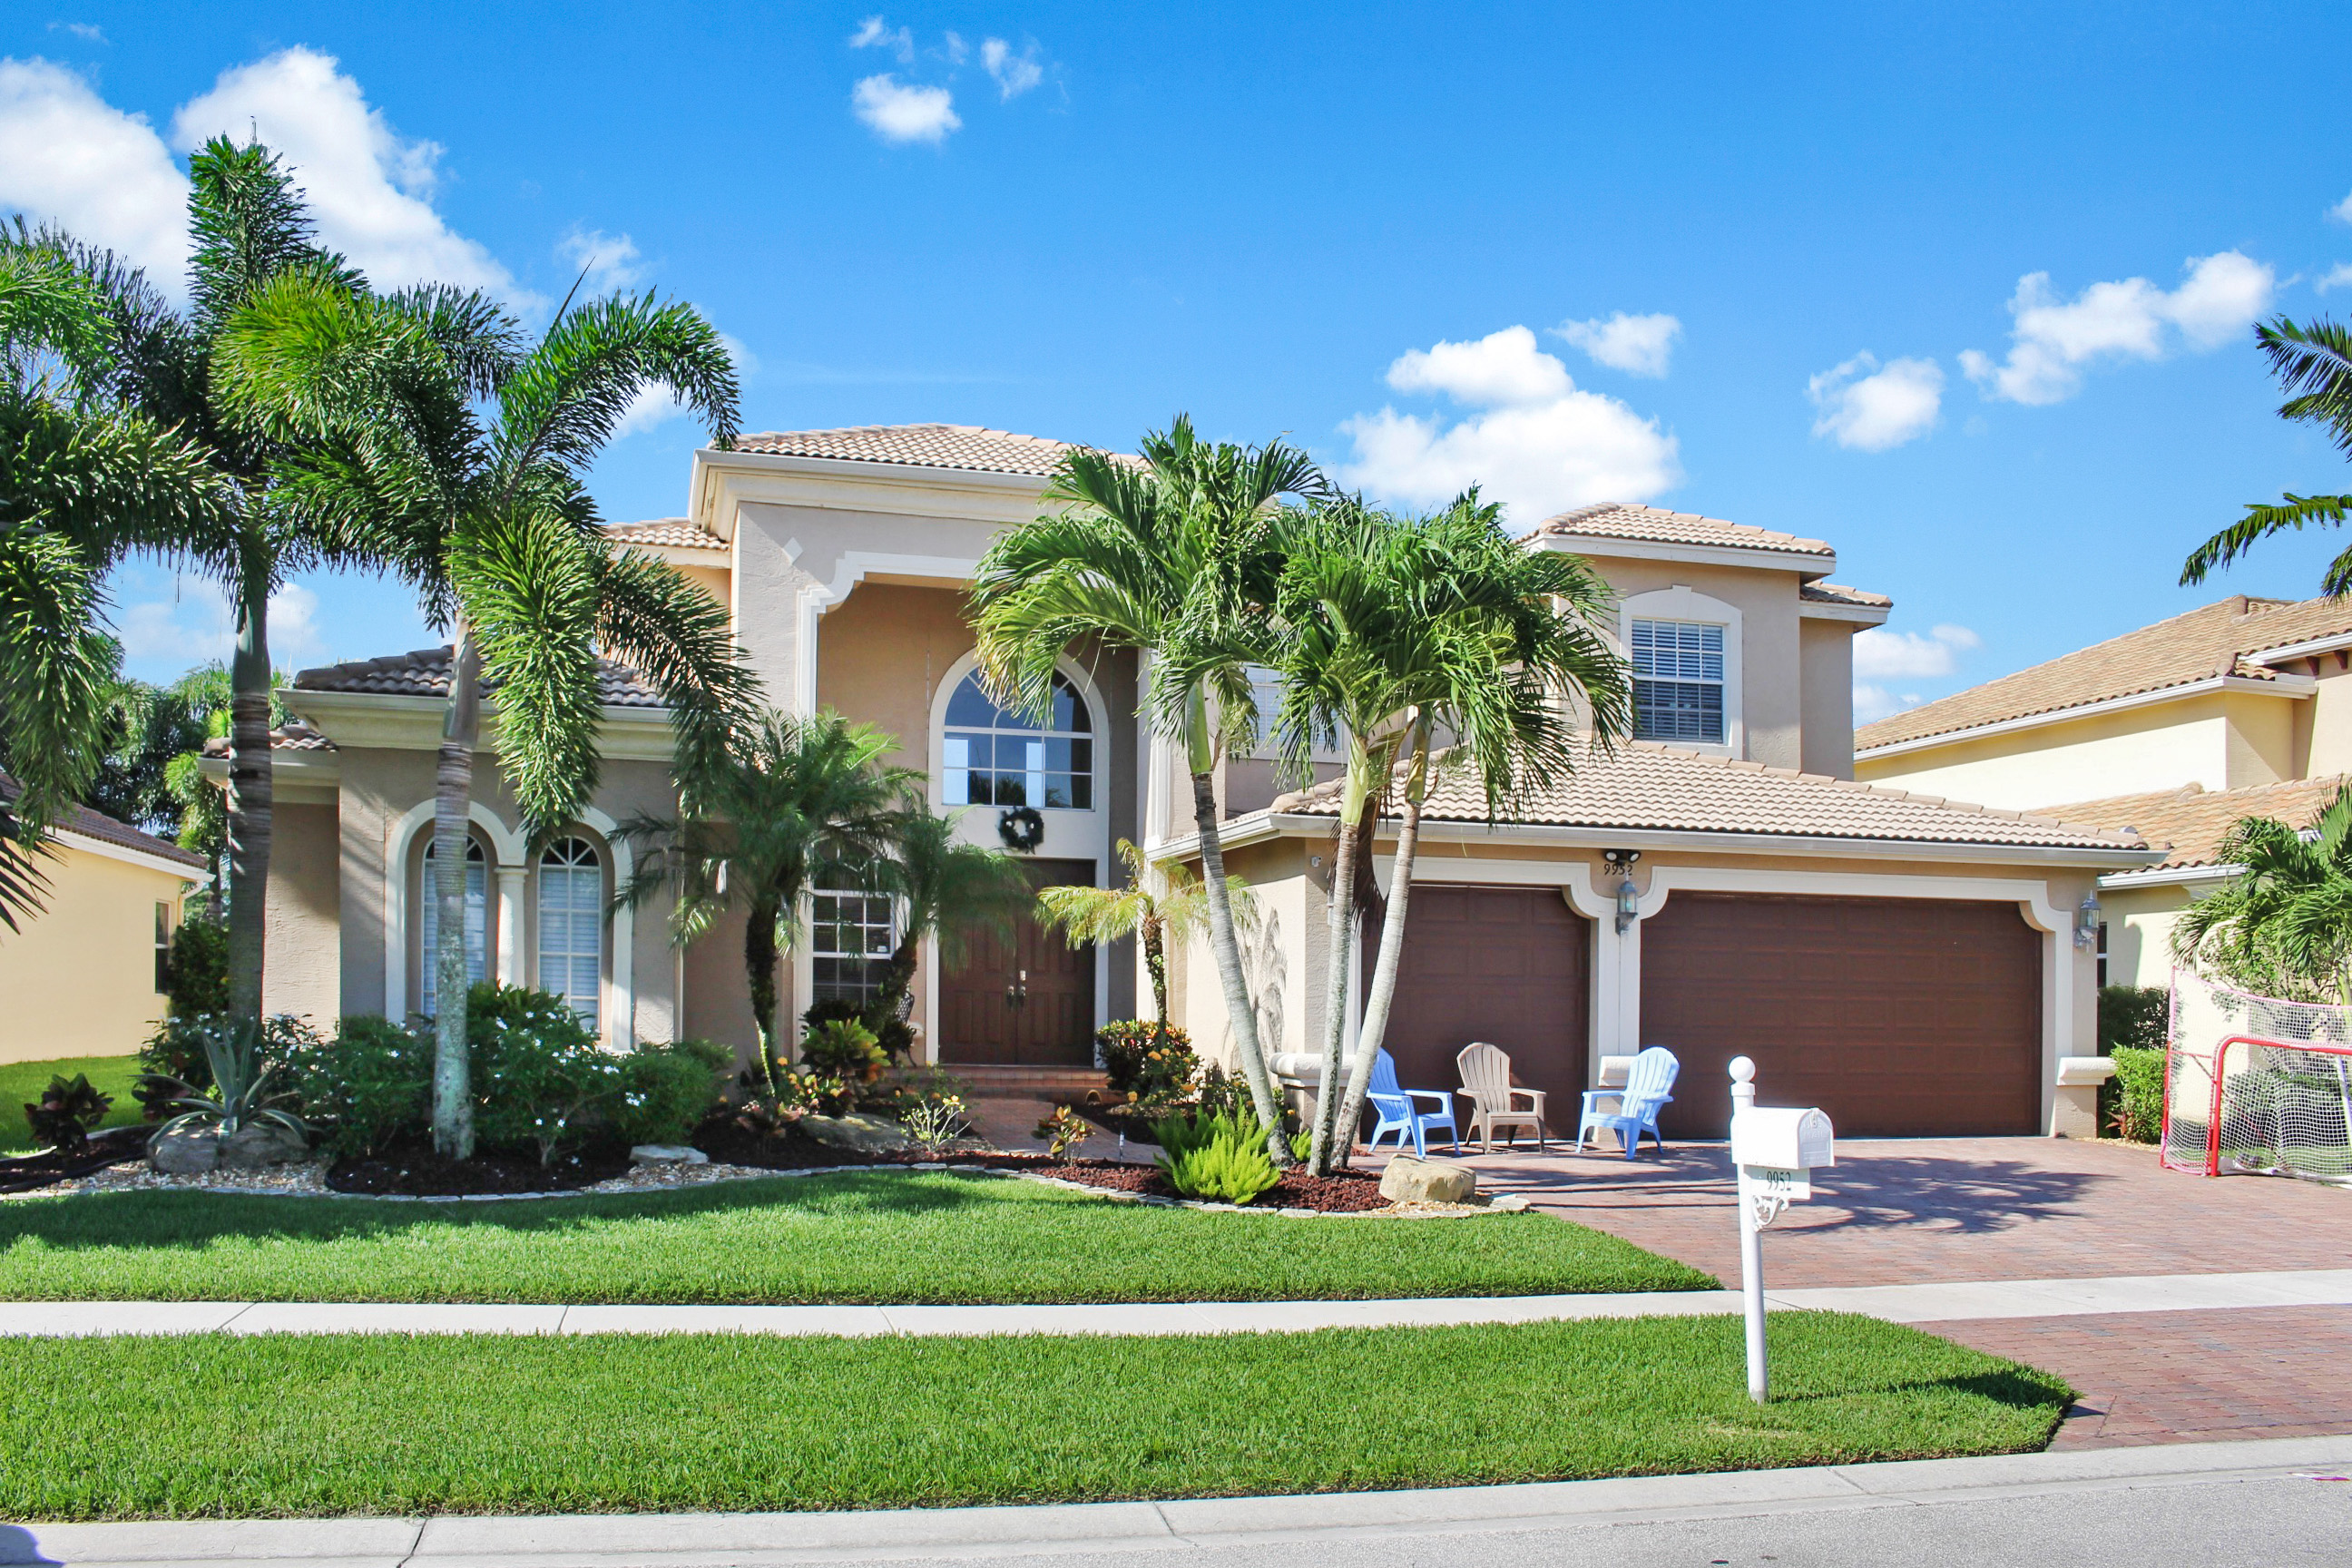 9952 Via Bernini, Lake Worth, FL 33467 Was Sold By Top Lake Worth Agents In Isola Bella Estates